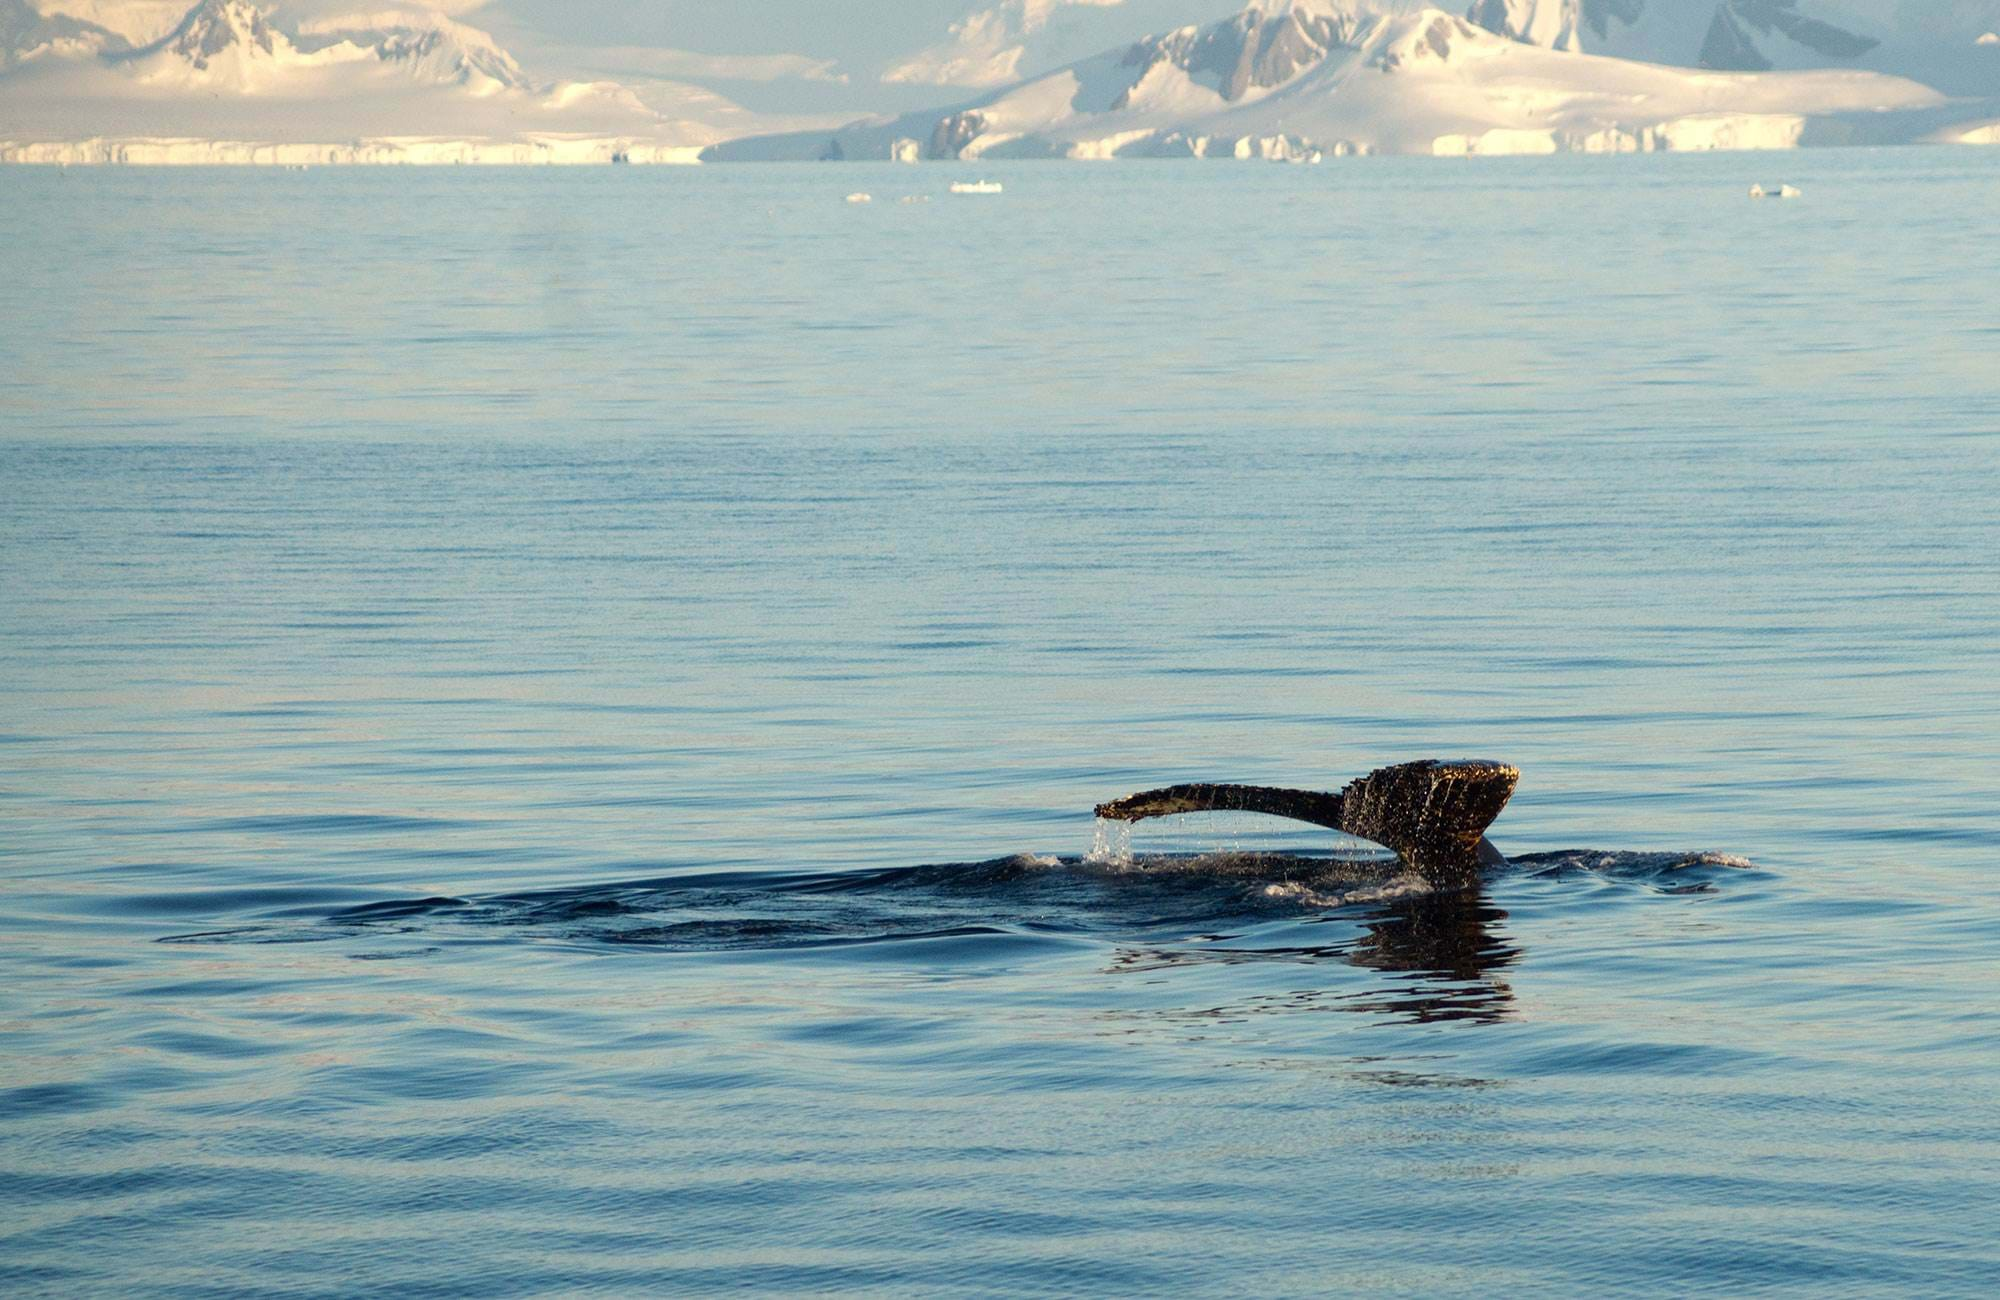 antactica-whale-diving-in-ocean